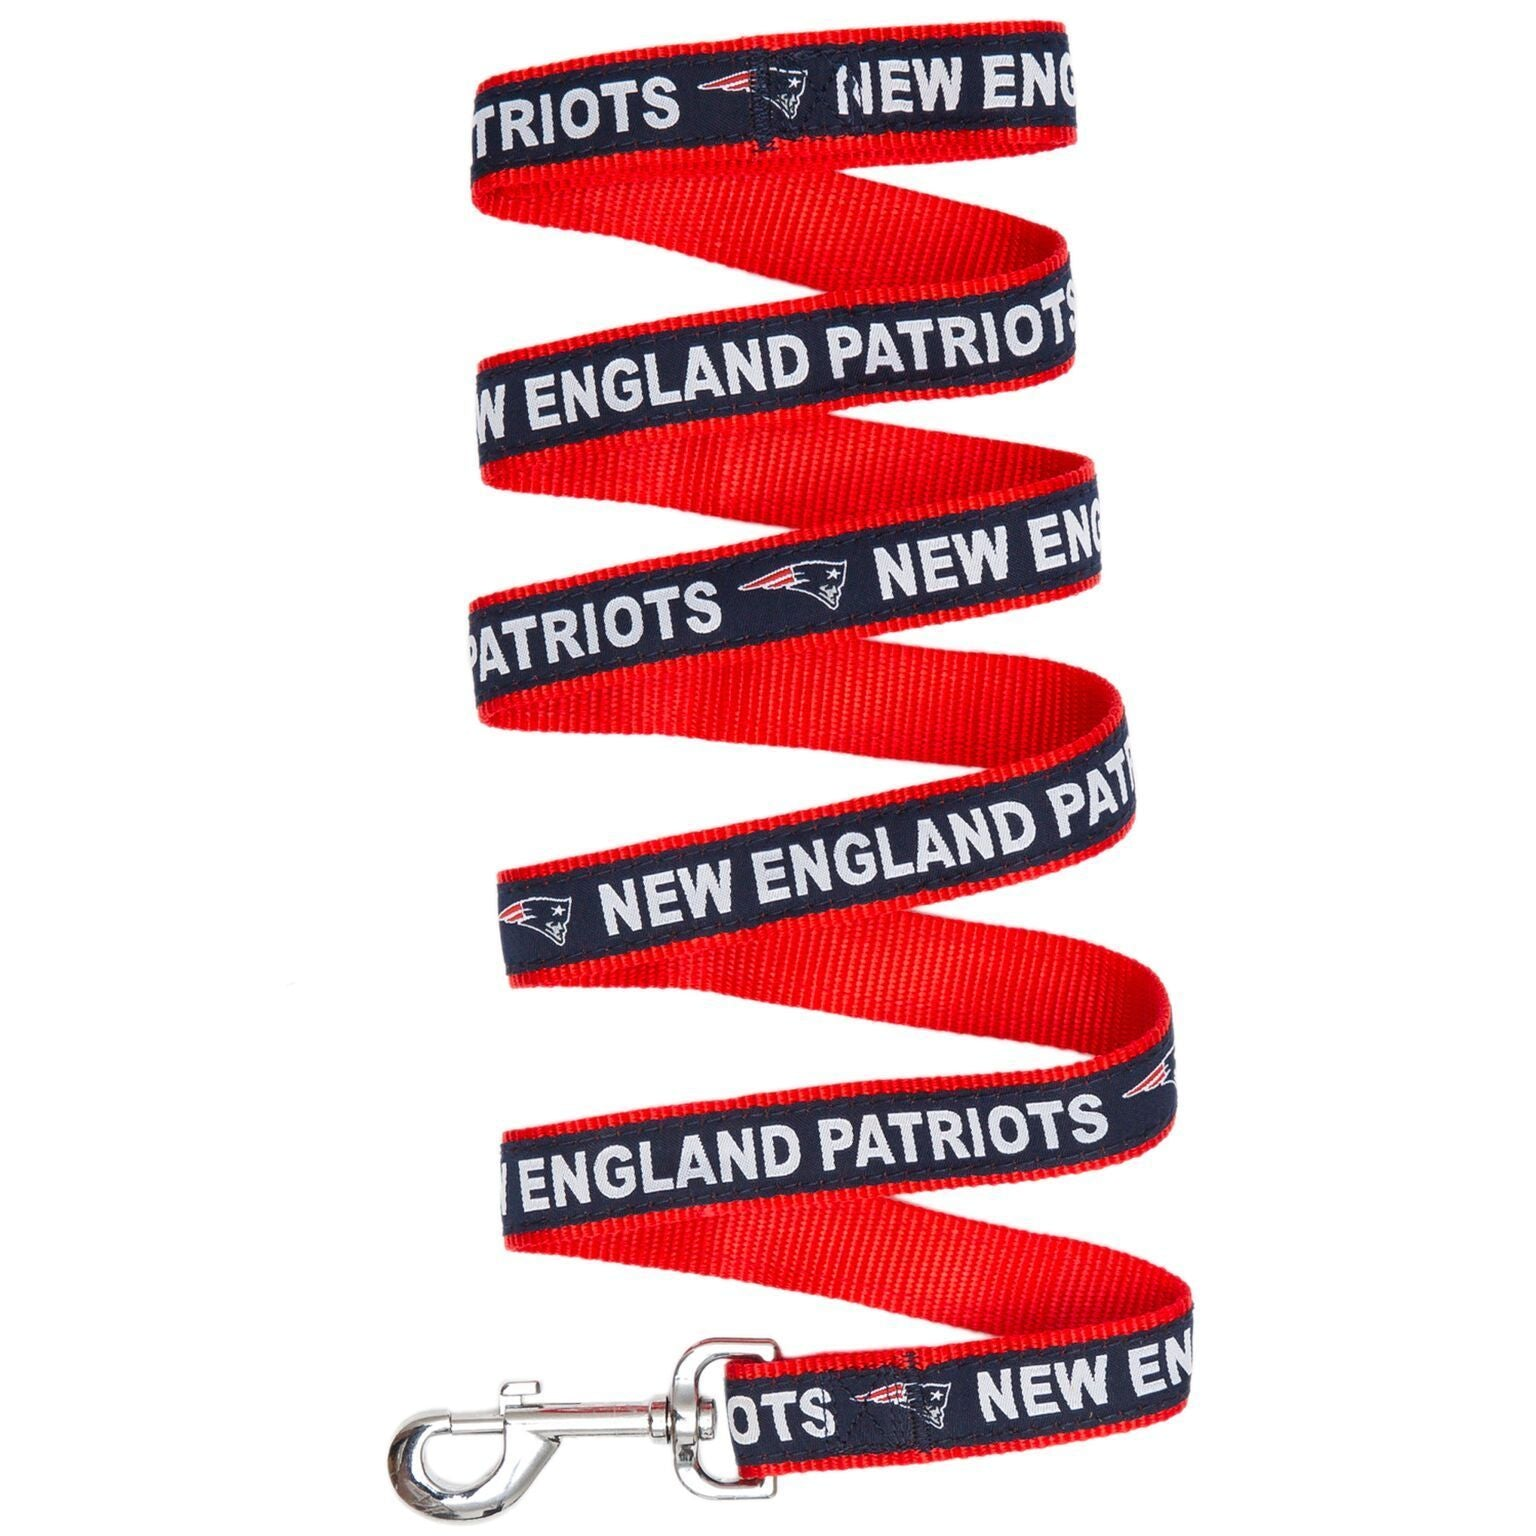 New England Patriots Football Jersey Cheerleading Uniform Collar Leash - Jersey Champs - Custom Basketball, Baseball, Football & Hockey Jerseys